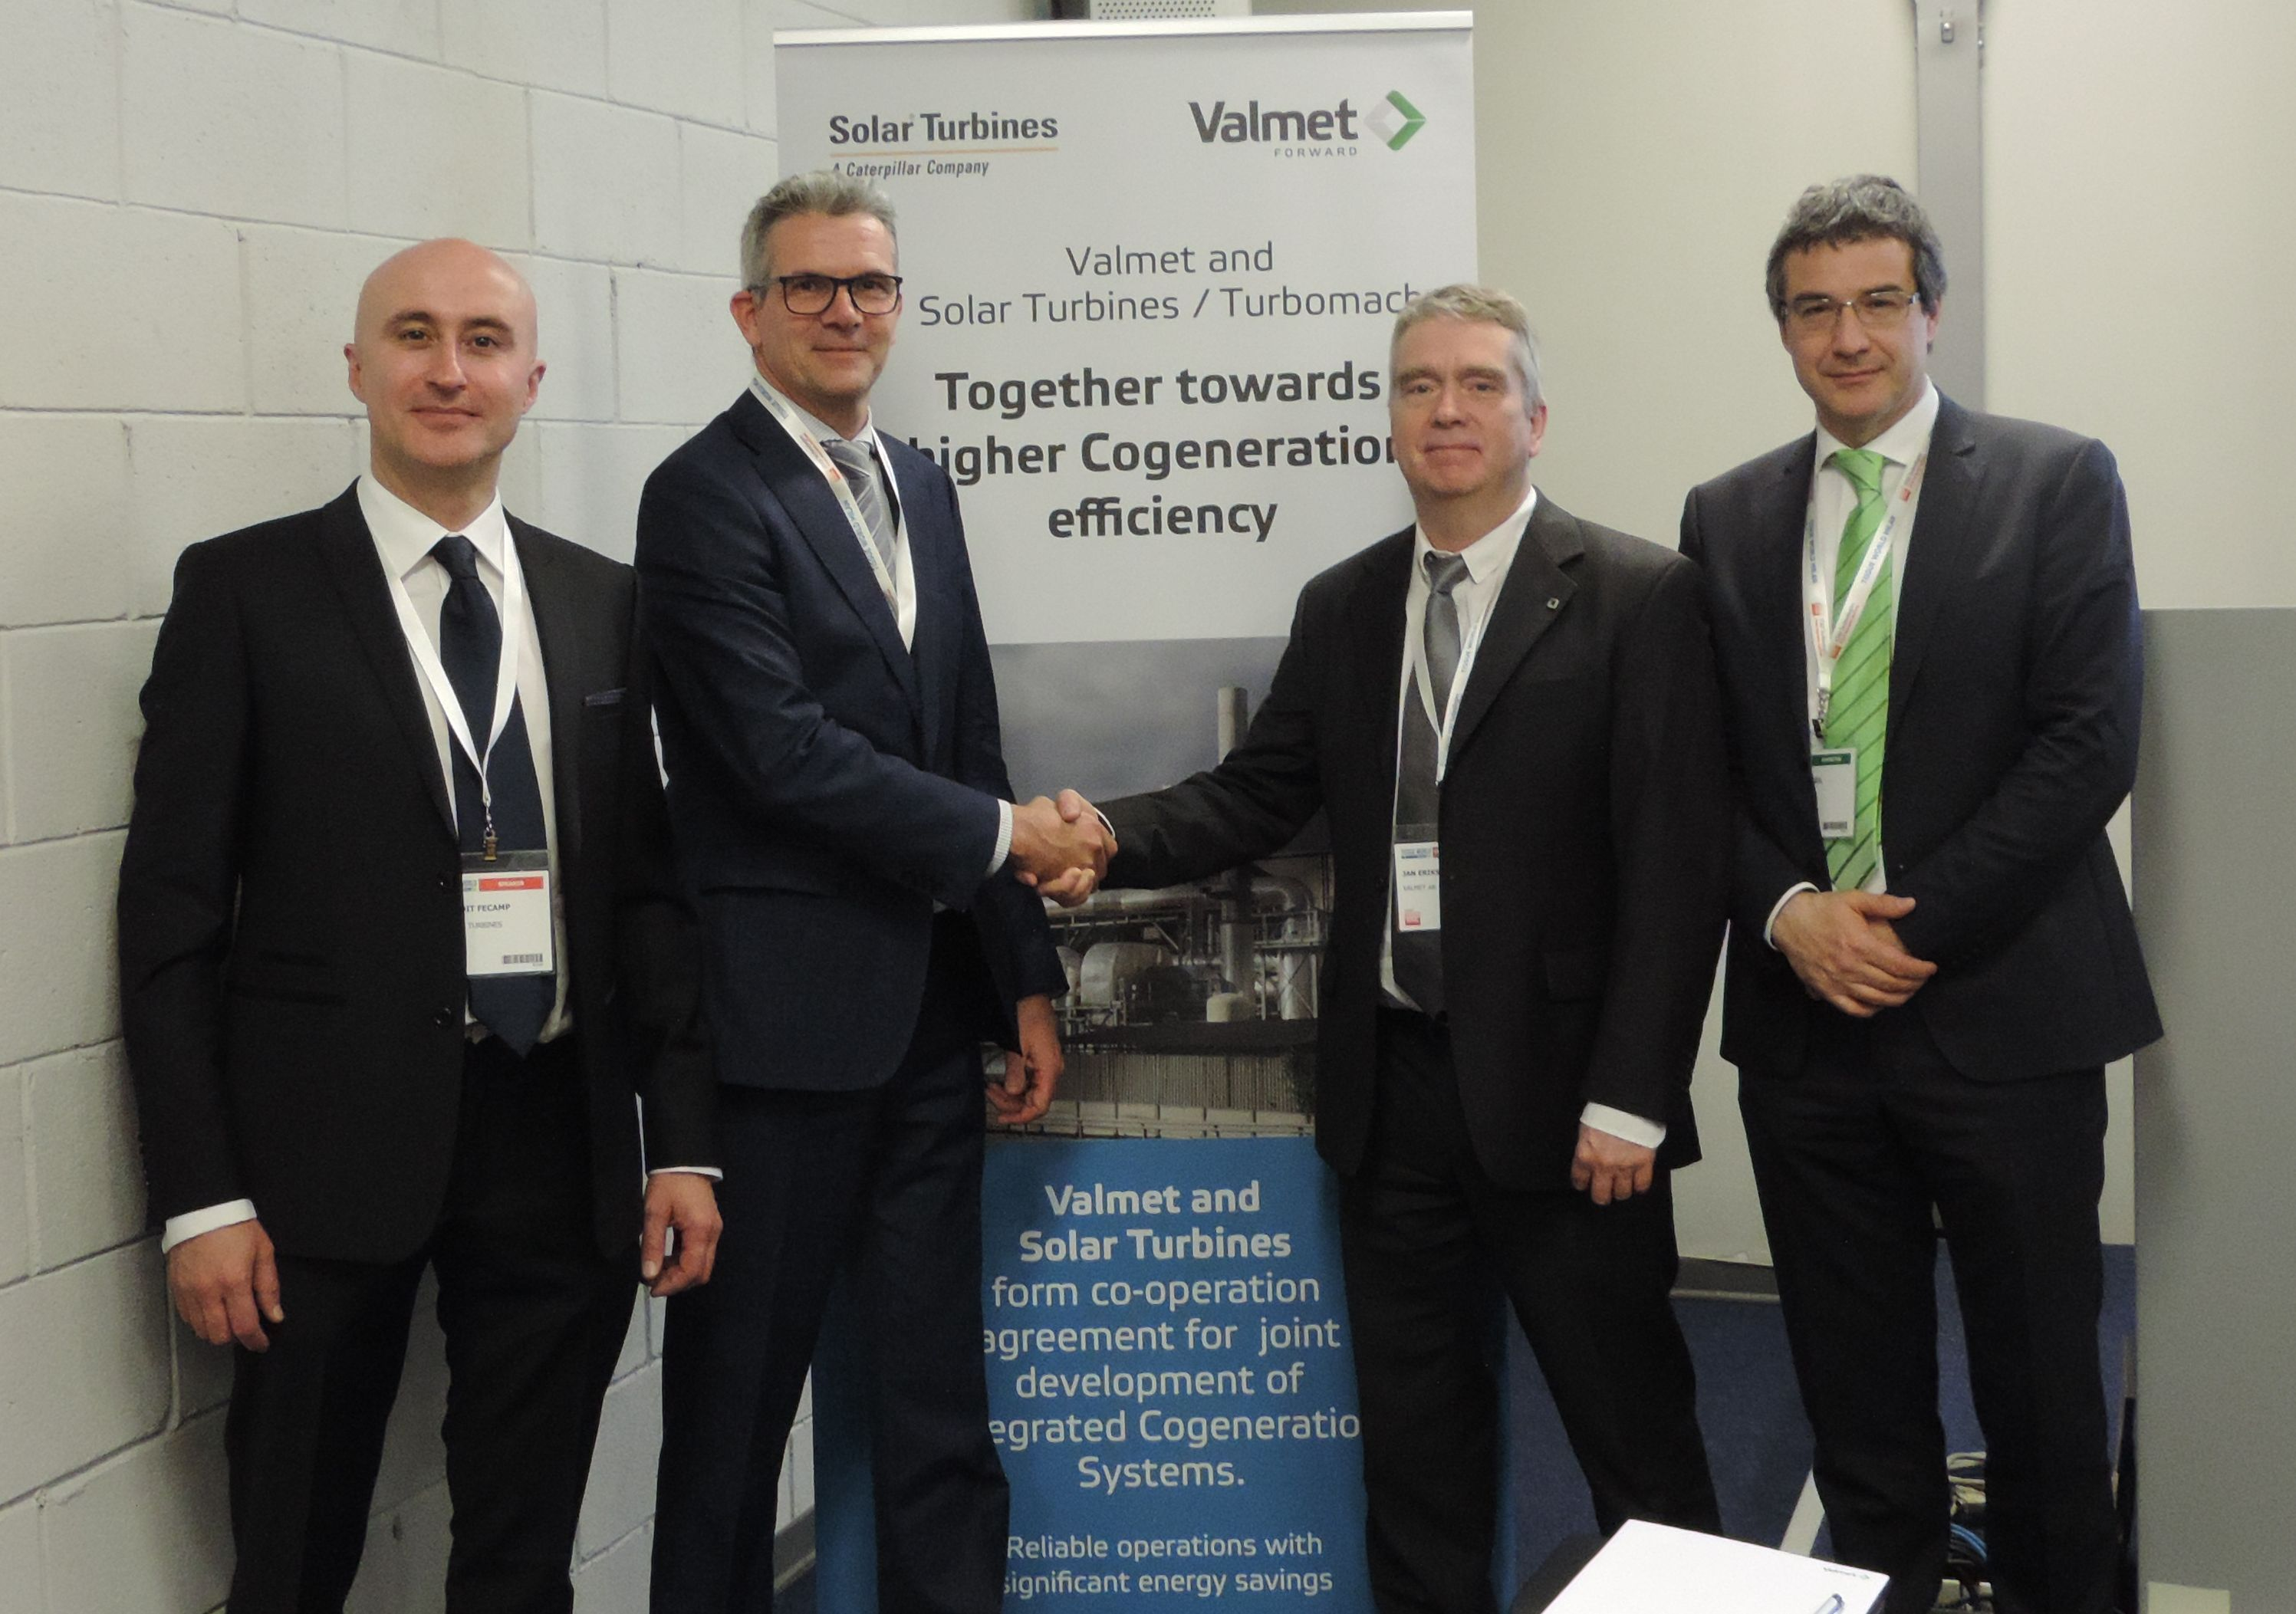 From left to right Benoît Fécamp, Paper & Tissue Market, Global, Market Development and Aad Den Elzen, Business Development Director, Solar Turbines Power Generation; Jan Erikson, VP Sales, Tissue Mills Business Unit and Paolo Vezil, Product Sales Manager, Valmet.